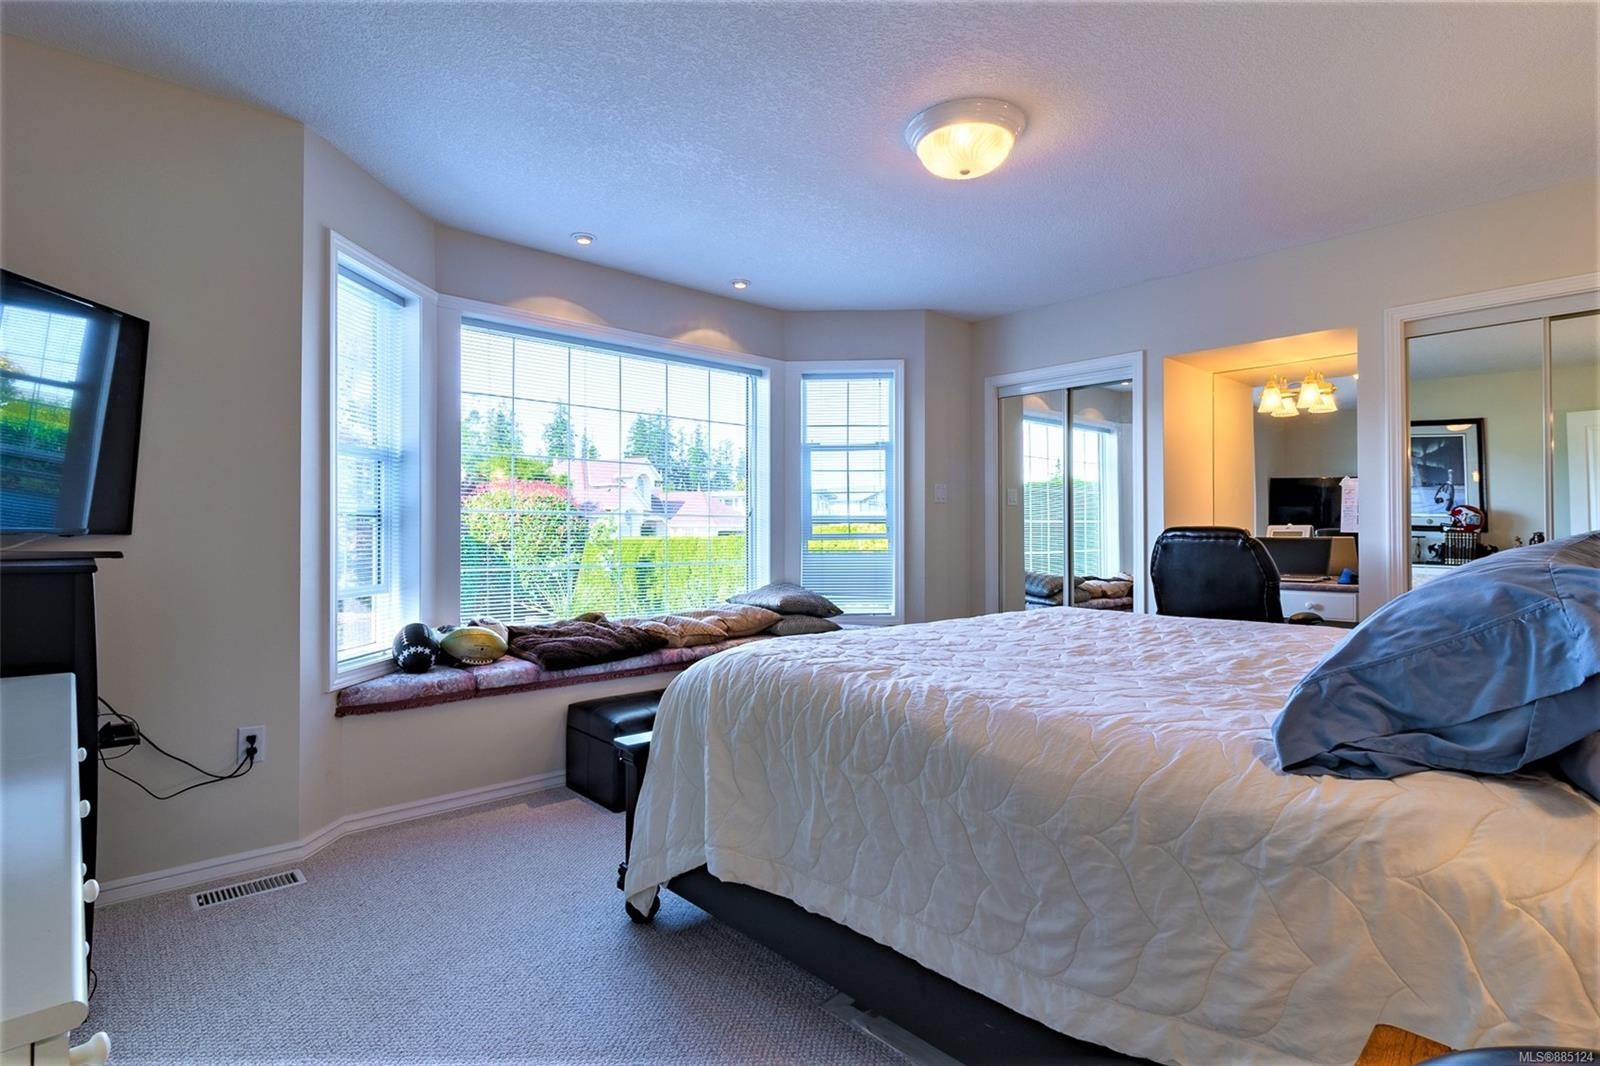 Photo 44: Photos: 1705 Admiral Tryon Blvd in : PQ French Creek House for sale (Parksville/Qualicum)  : MLS®# 885124